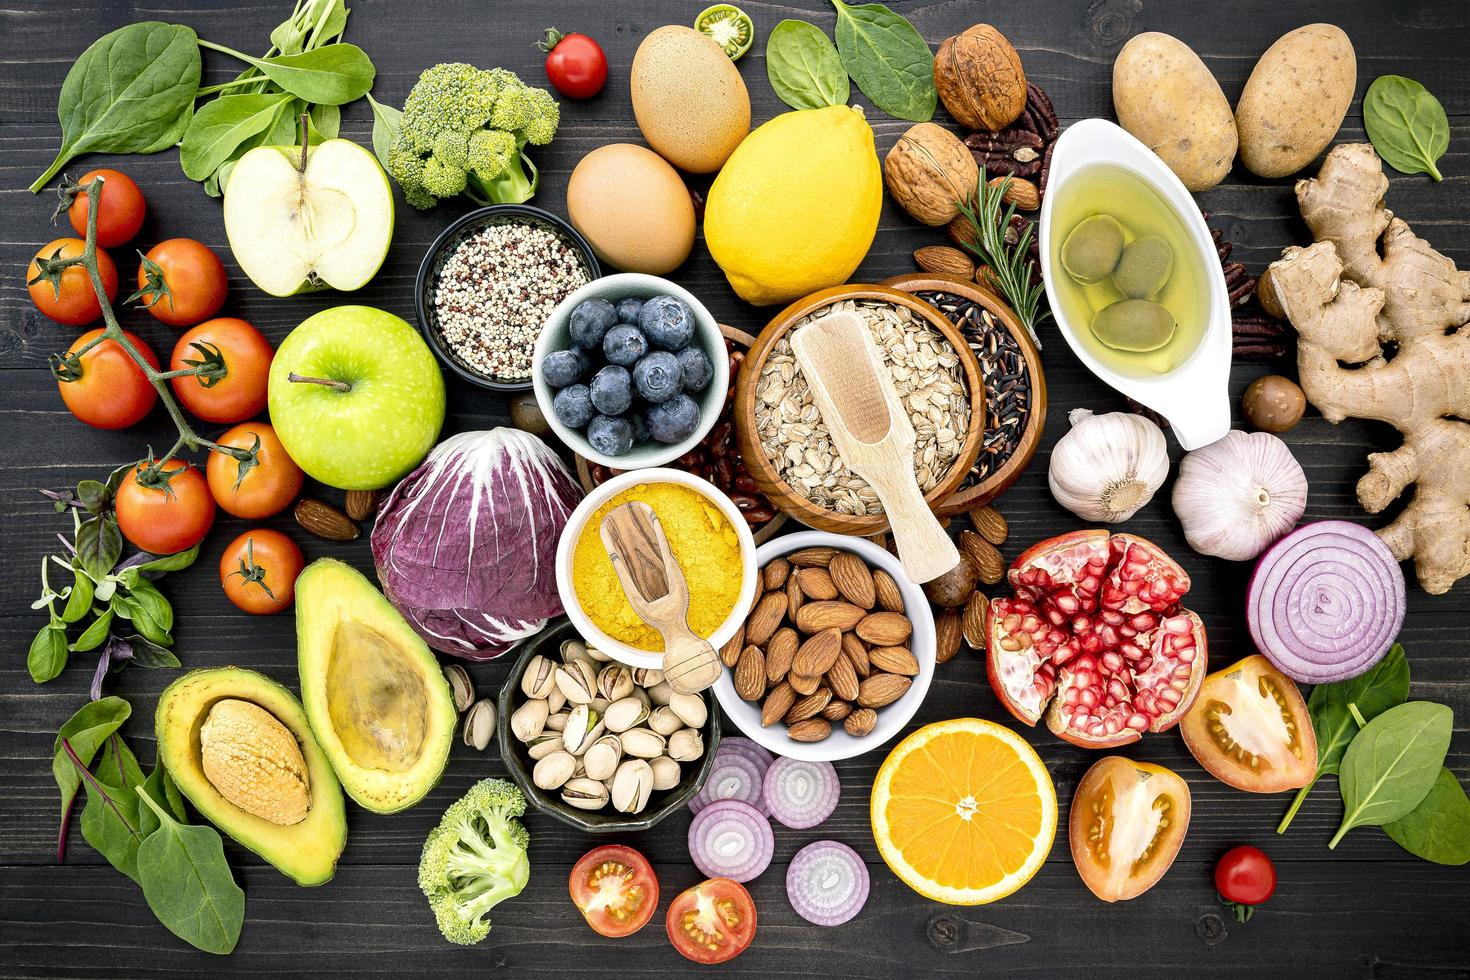 Top view of healthy foods on a dark background photo